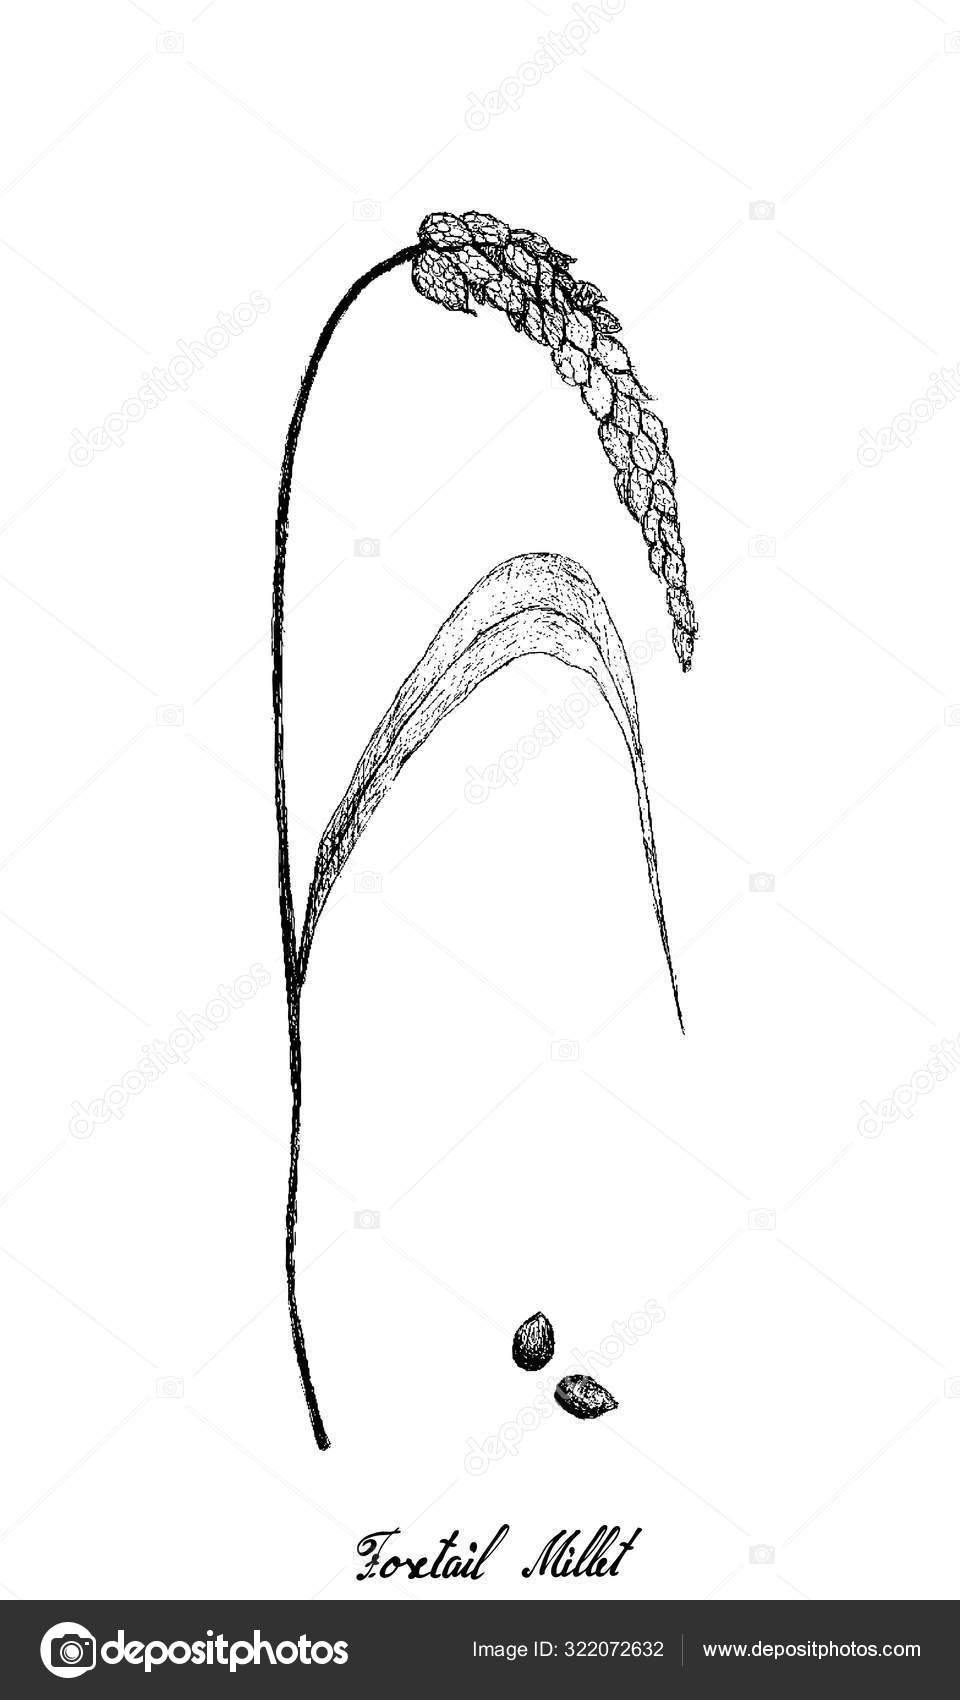 Fox Tail Drawing : drawing, Drawing, Stock, Pictures,, Royalty, Foxtail, Images, Download, Depositphotos®